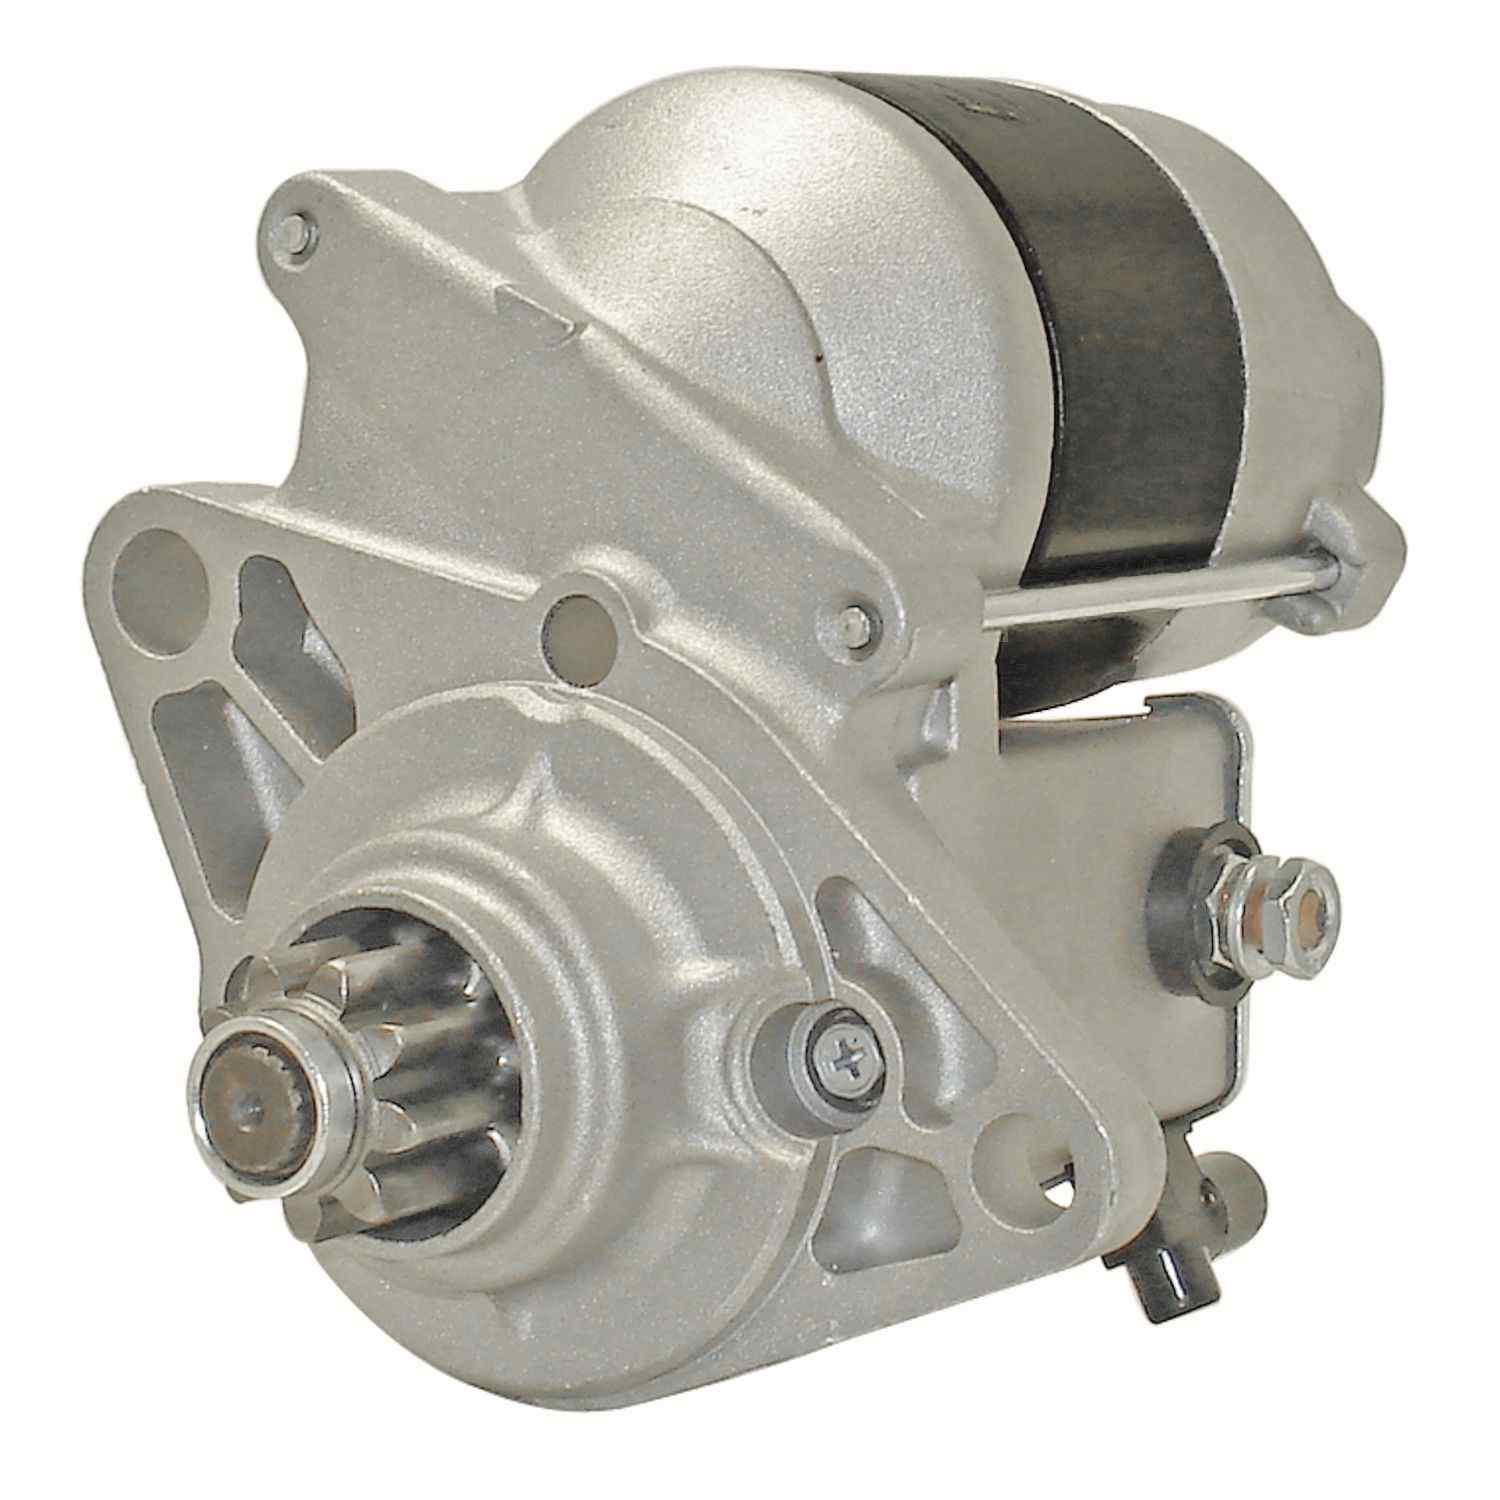 ACDELCO GOLD/PROFESSIONAL - Reman Starter Motor - DCC 336-1100A